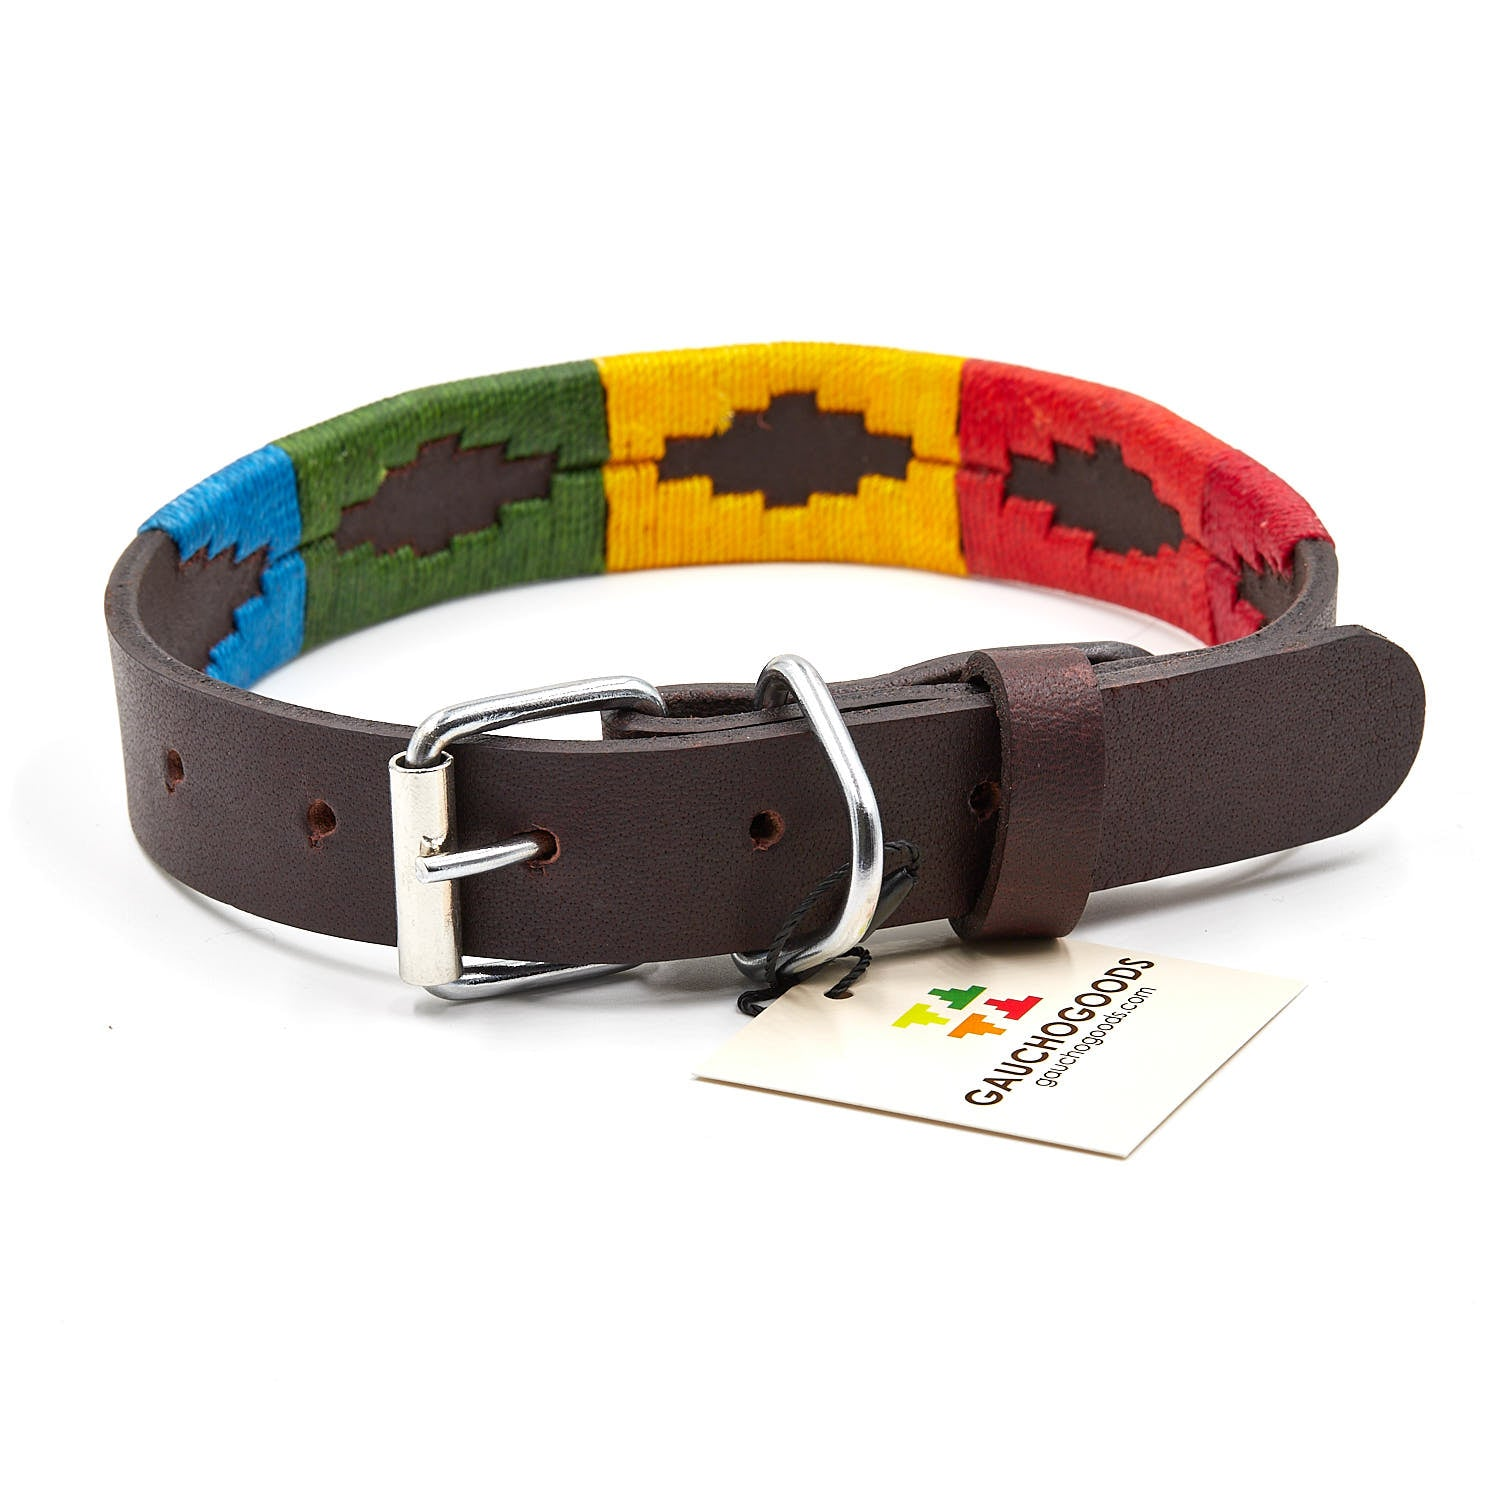 The Woodstock Leather Dog Collar - hand-stitched with the distinctive Orange, Red, Yellow, Green and Blue